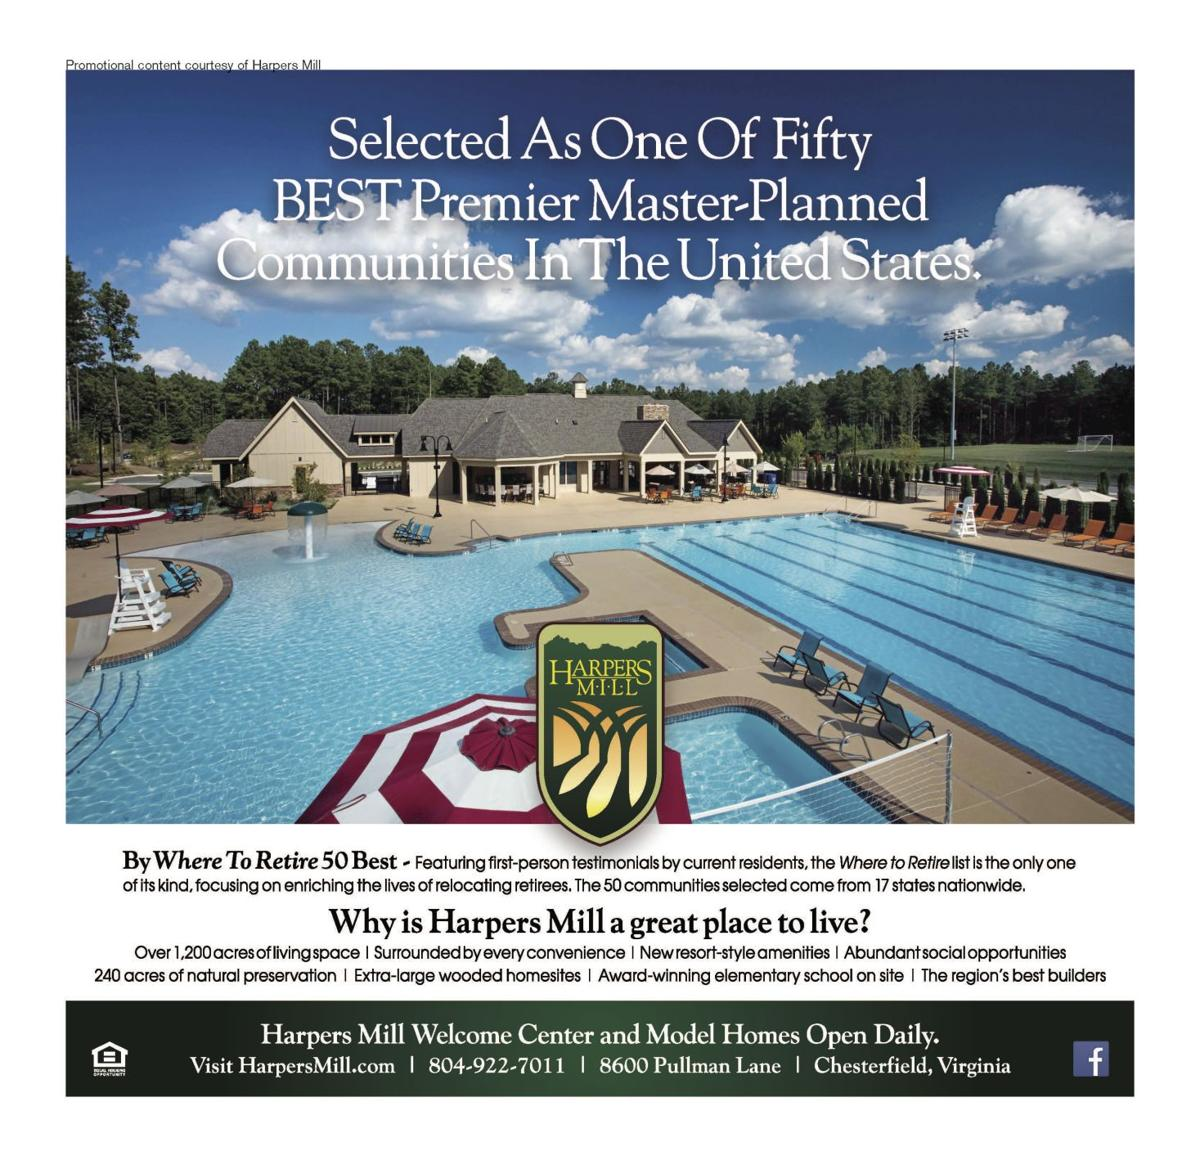 Harpers Mill: Selected as one of fifty best 02